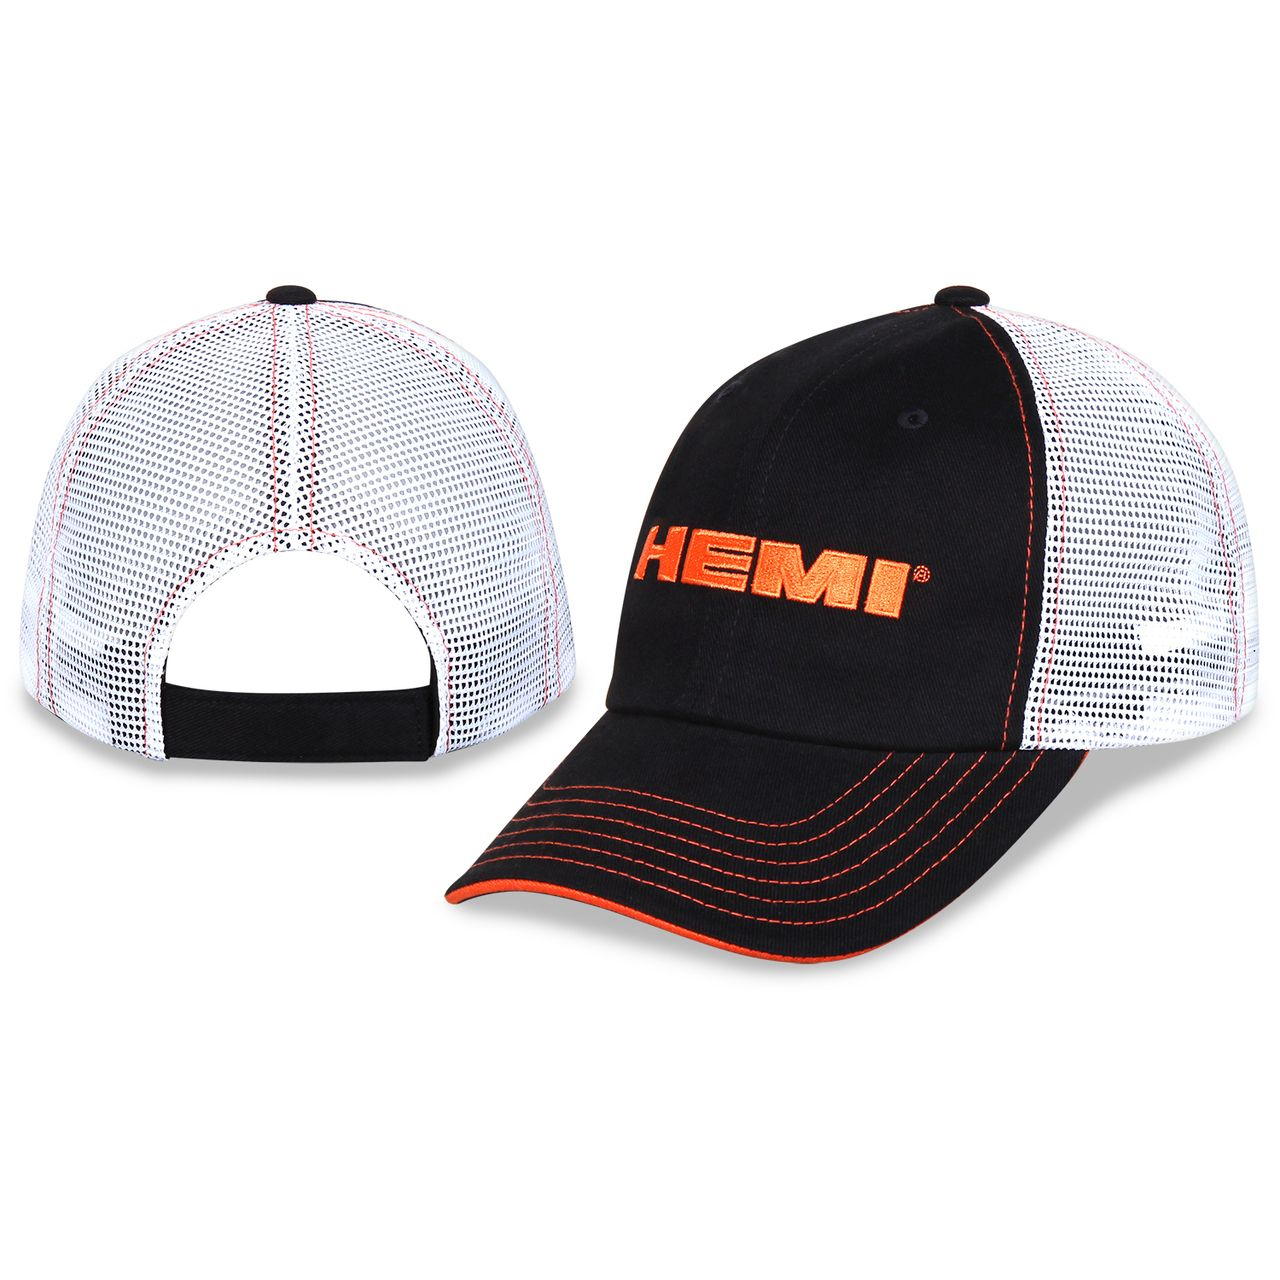 0aede086932 Mopar Gear - HEMI Trucker Cap - Black   White